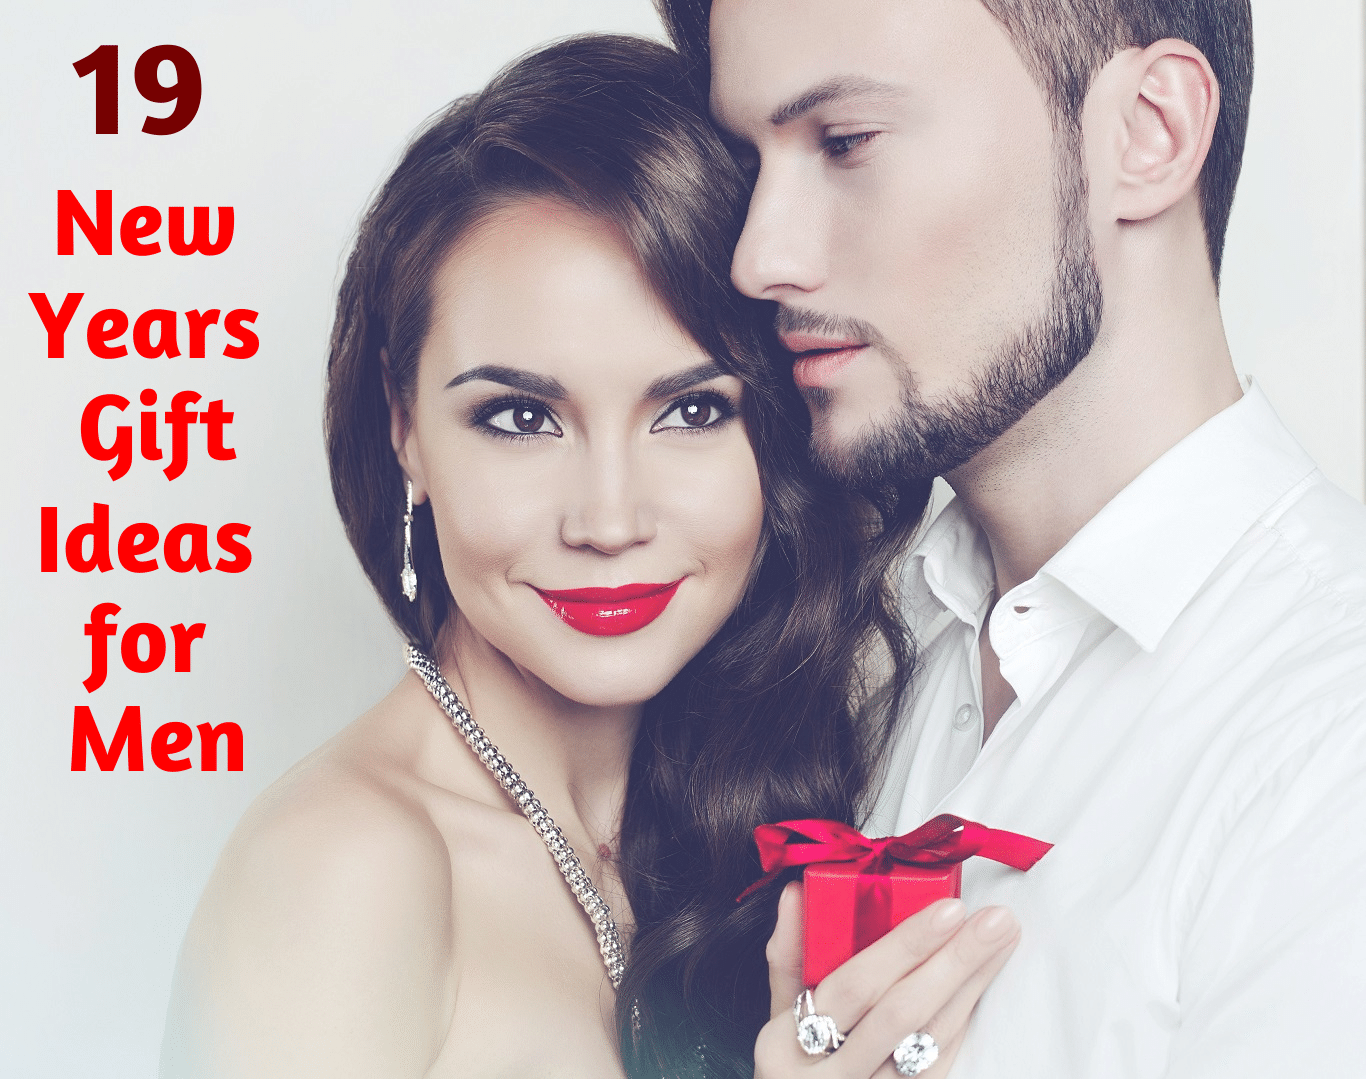 19 New Years Gift Ideas for Men